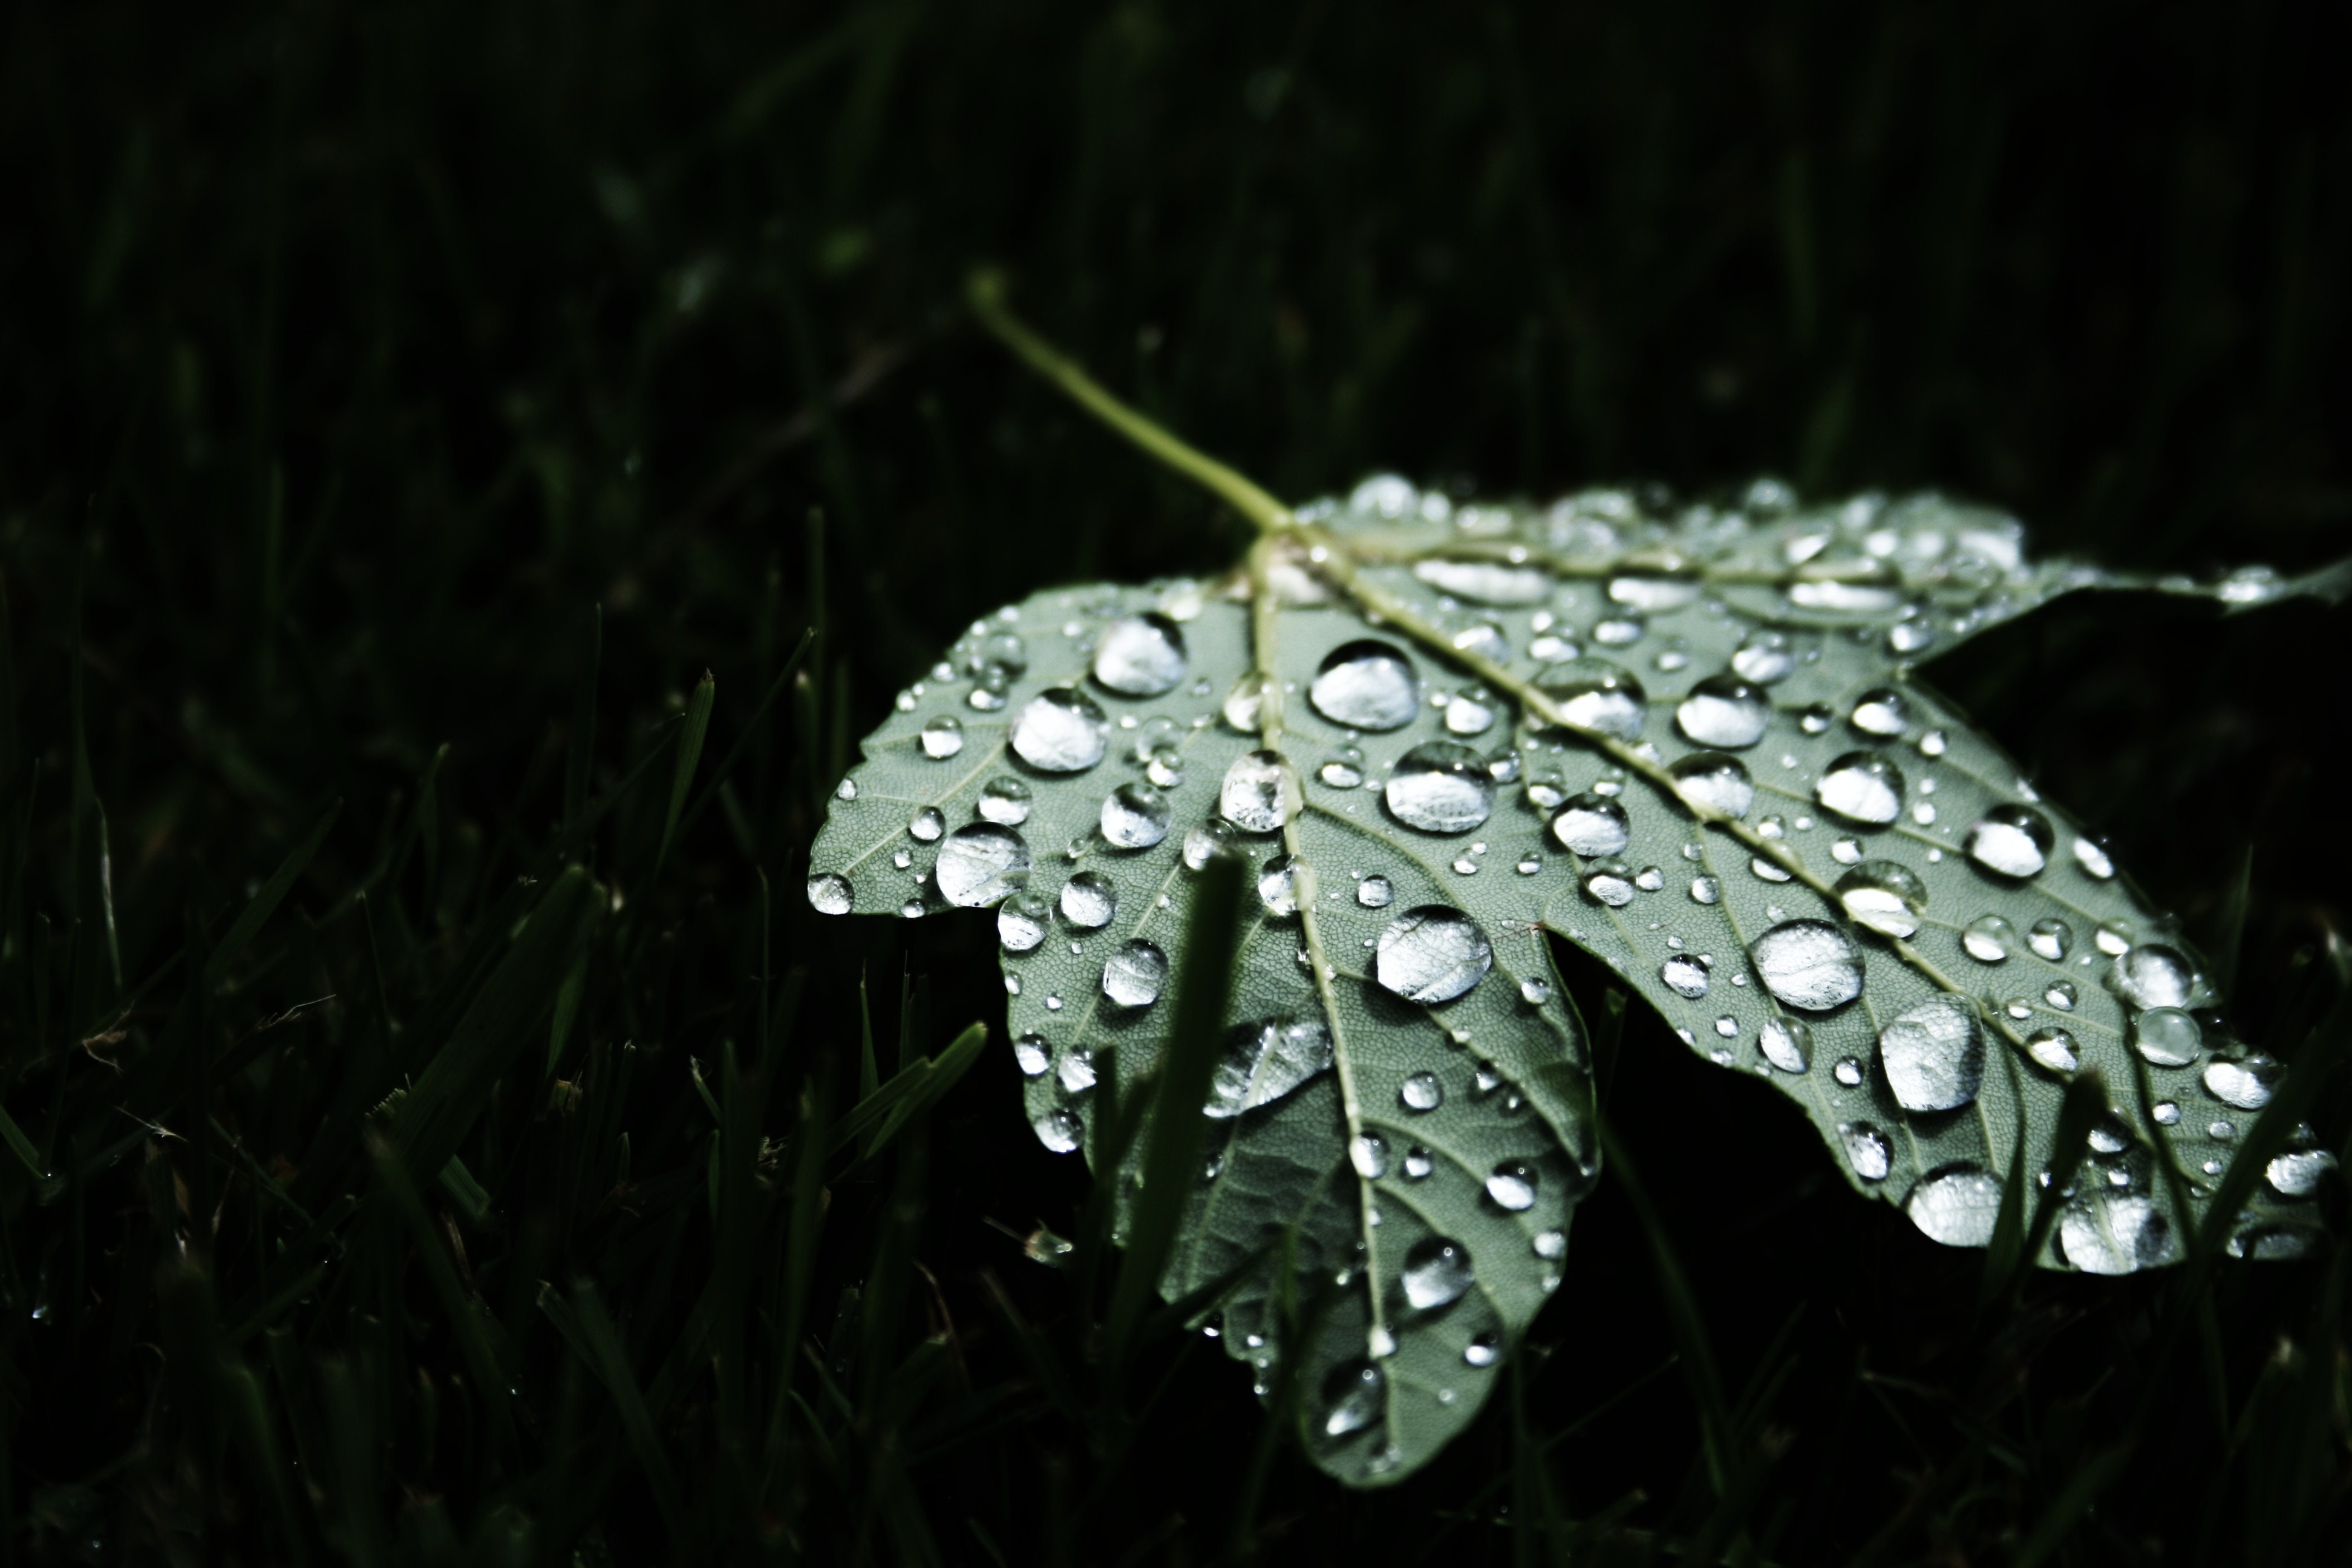 A macro shot of large round droplets of water on a green maple leaf